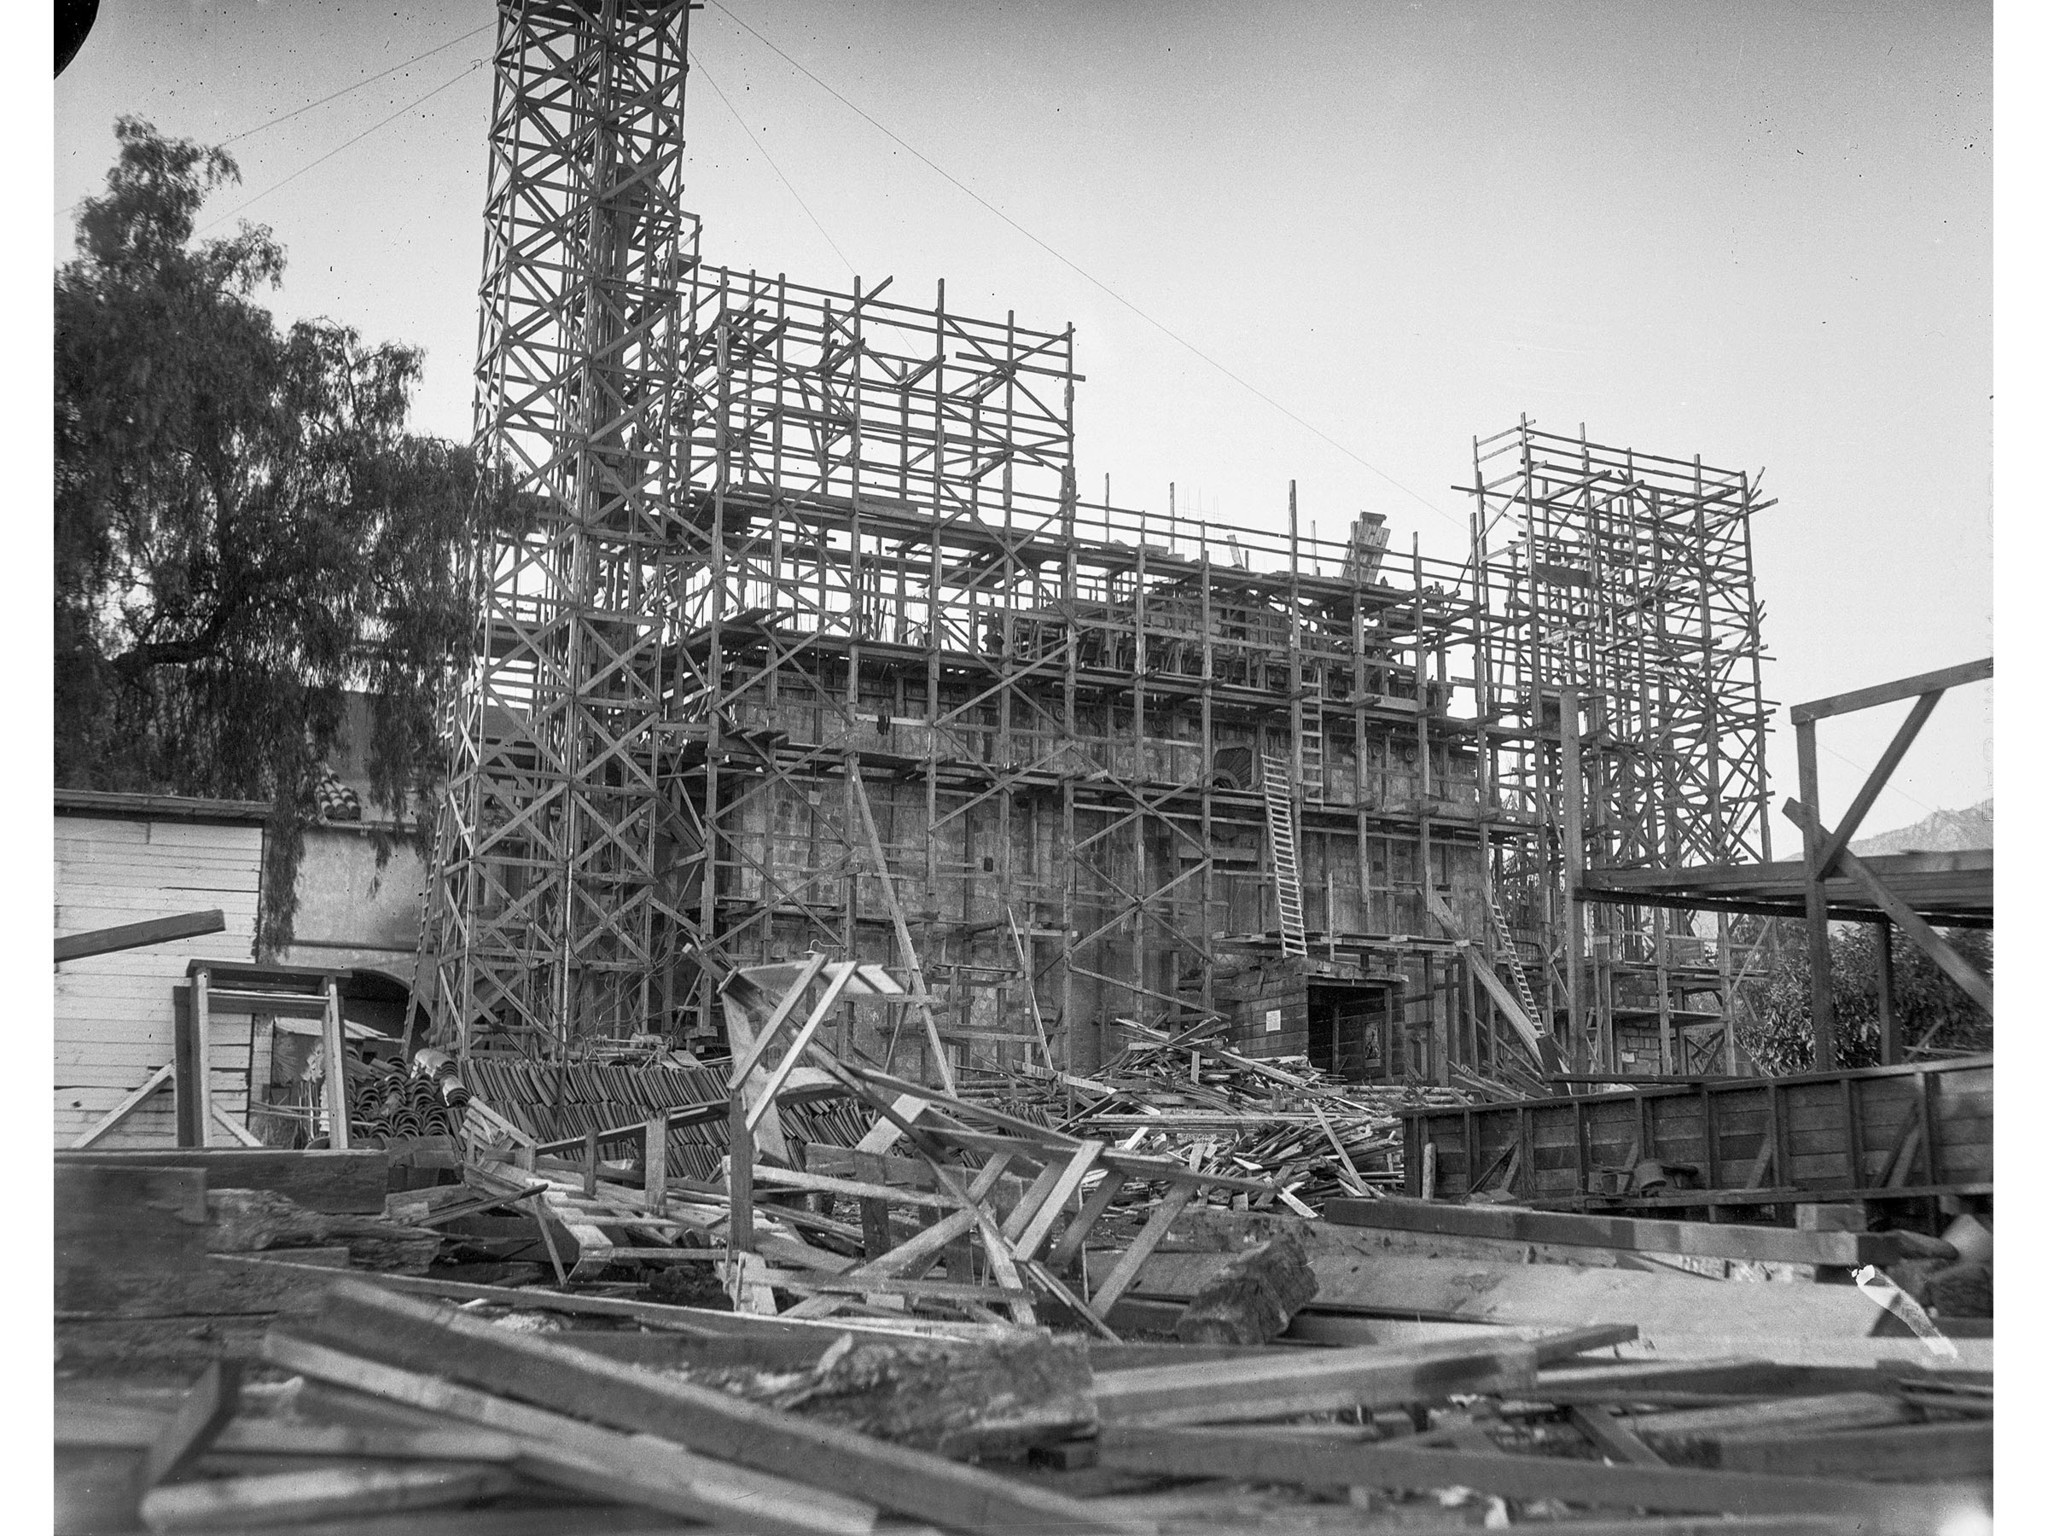 1926: Scaffolding surrounds the earthquake damaged Mission Santa Barbara during repairs to the famou